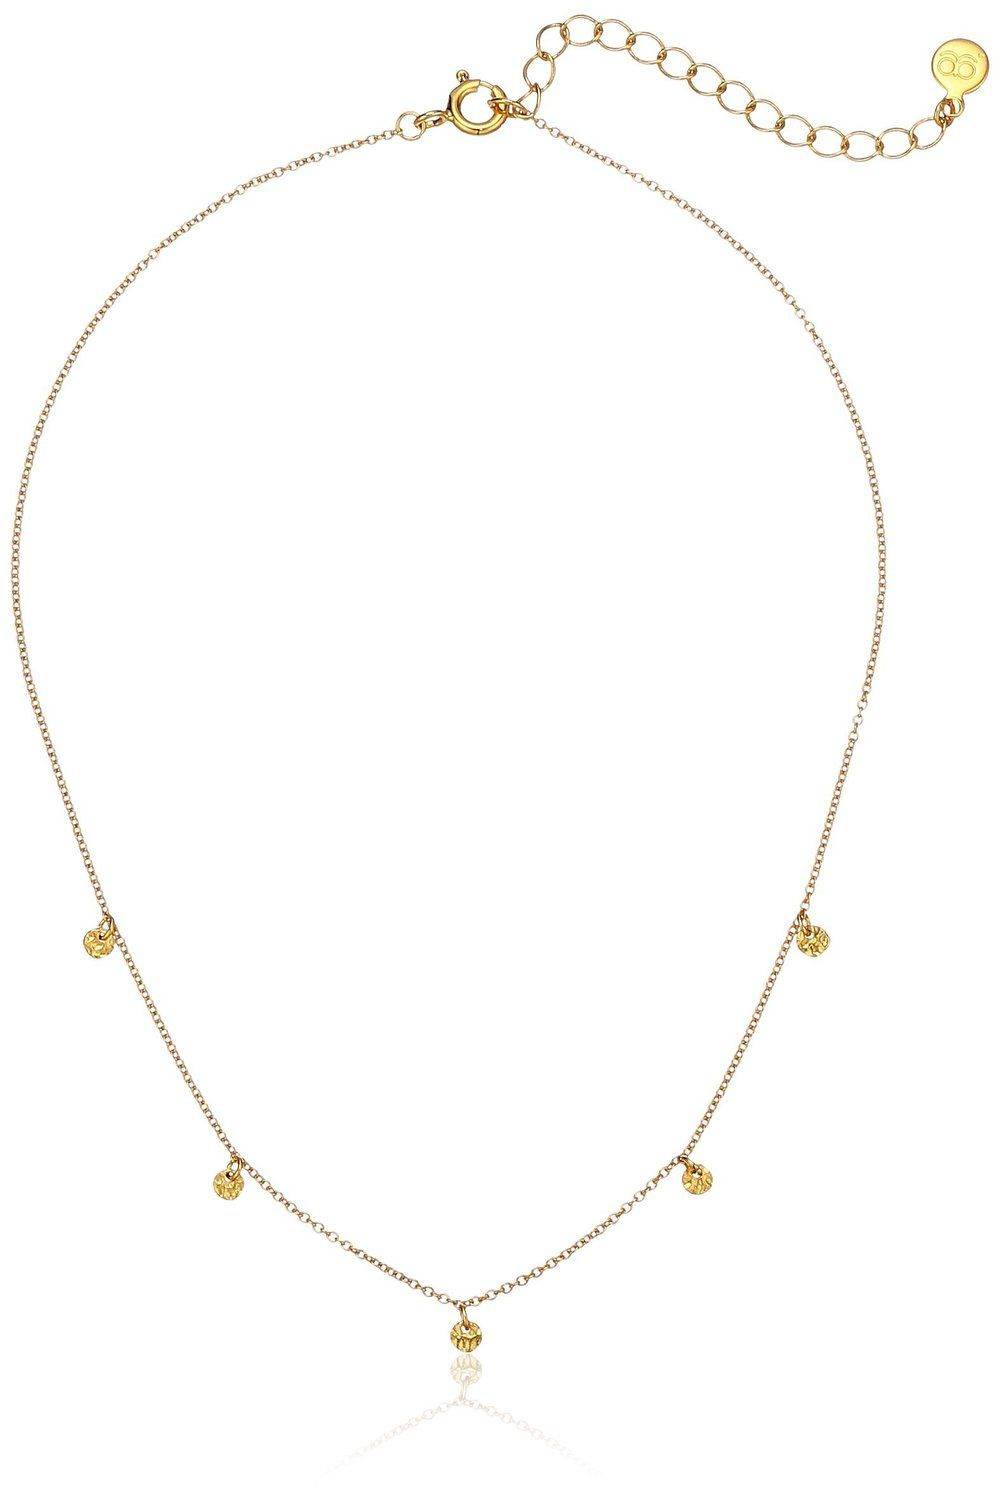 gorjana 5 Disc Choker Necklace, 12'   2' Extender *** Find out more details @ http://www.amazon.com/gp/product/B01AJZSNUY/?tag=finejewelry4u.com-20&pxy=030716075910